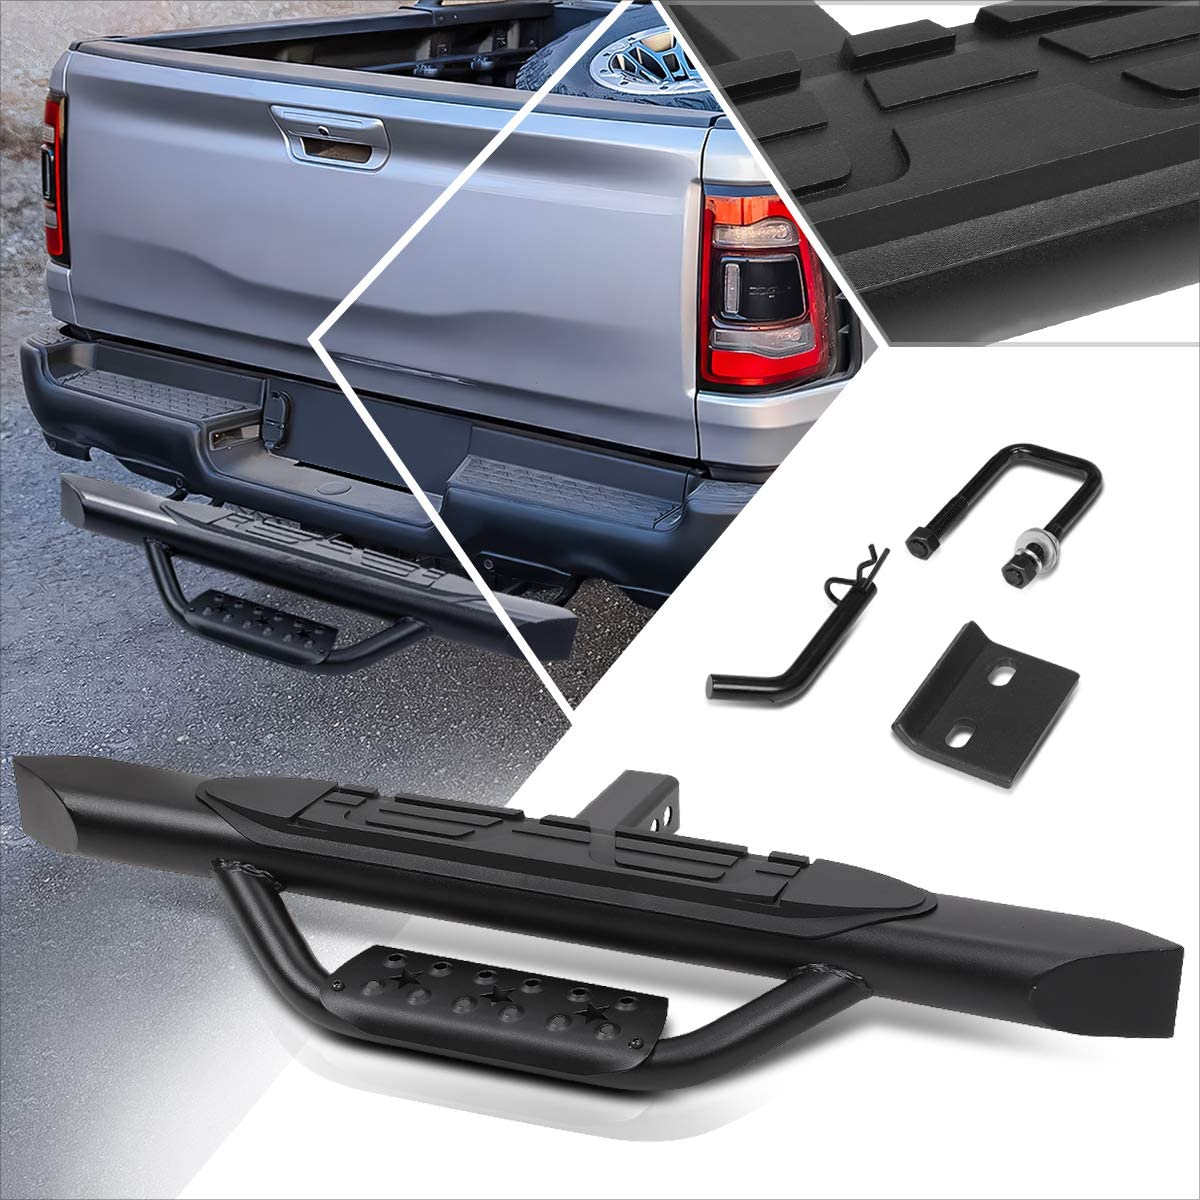 Aluminum New product! New type Oval Trailer Max 77% OFF Towing Hitch Step Fits Tru Inch Receiver 2